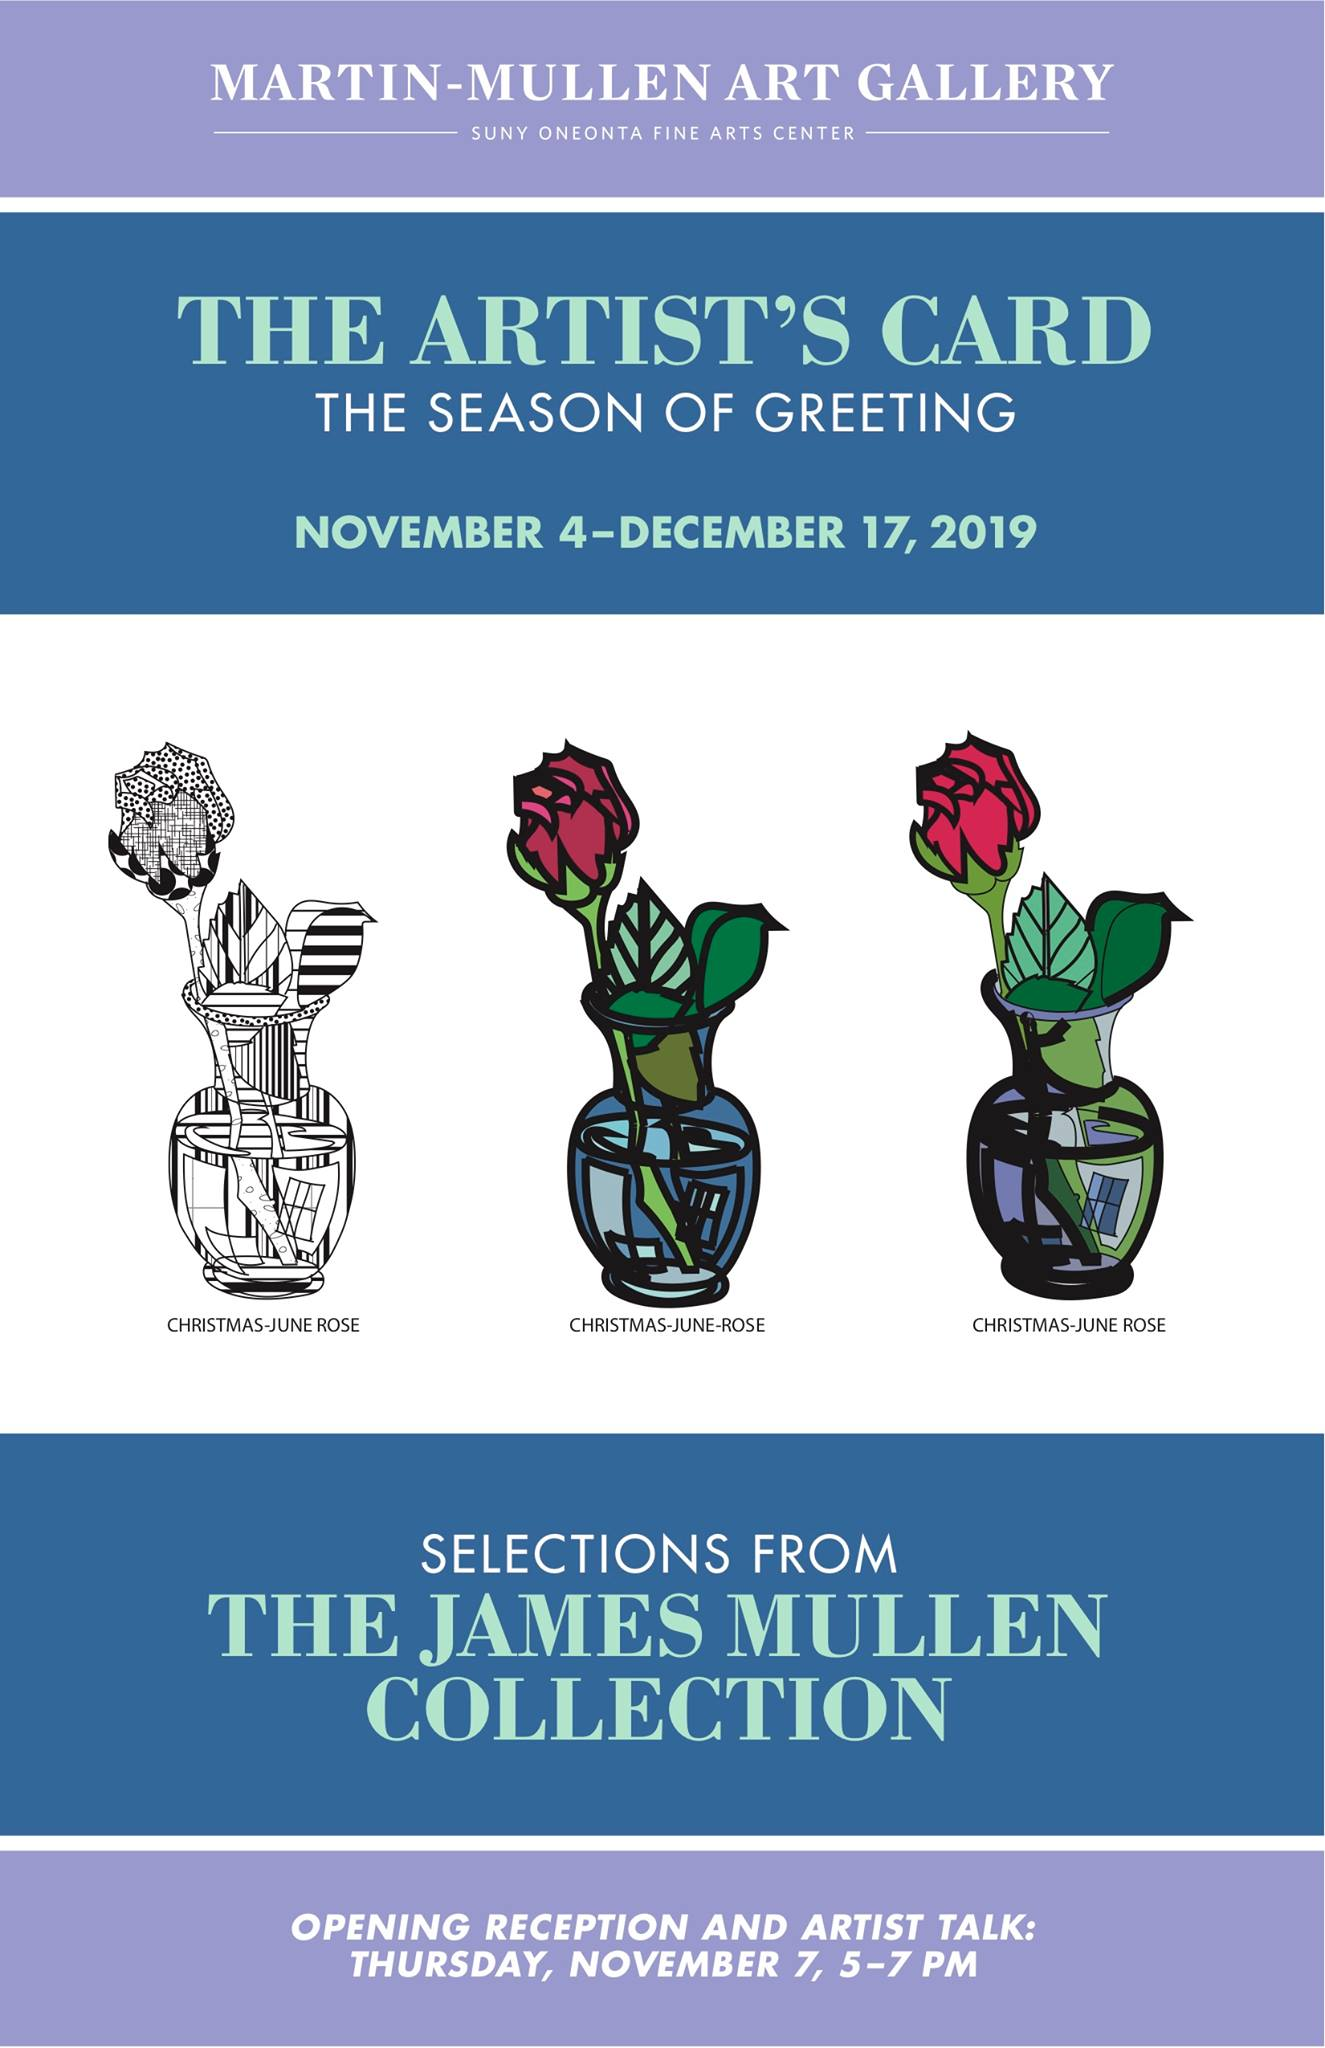 The Artist's Card - Selections from The James Mullen Collection